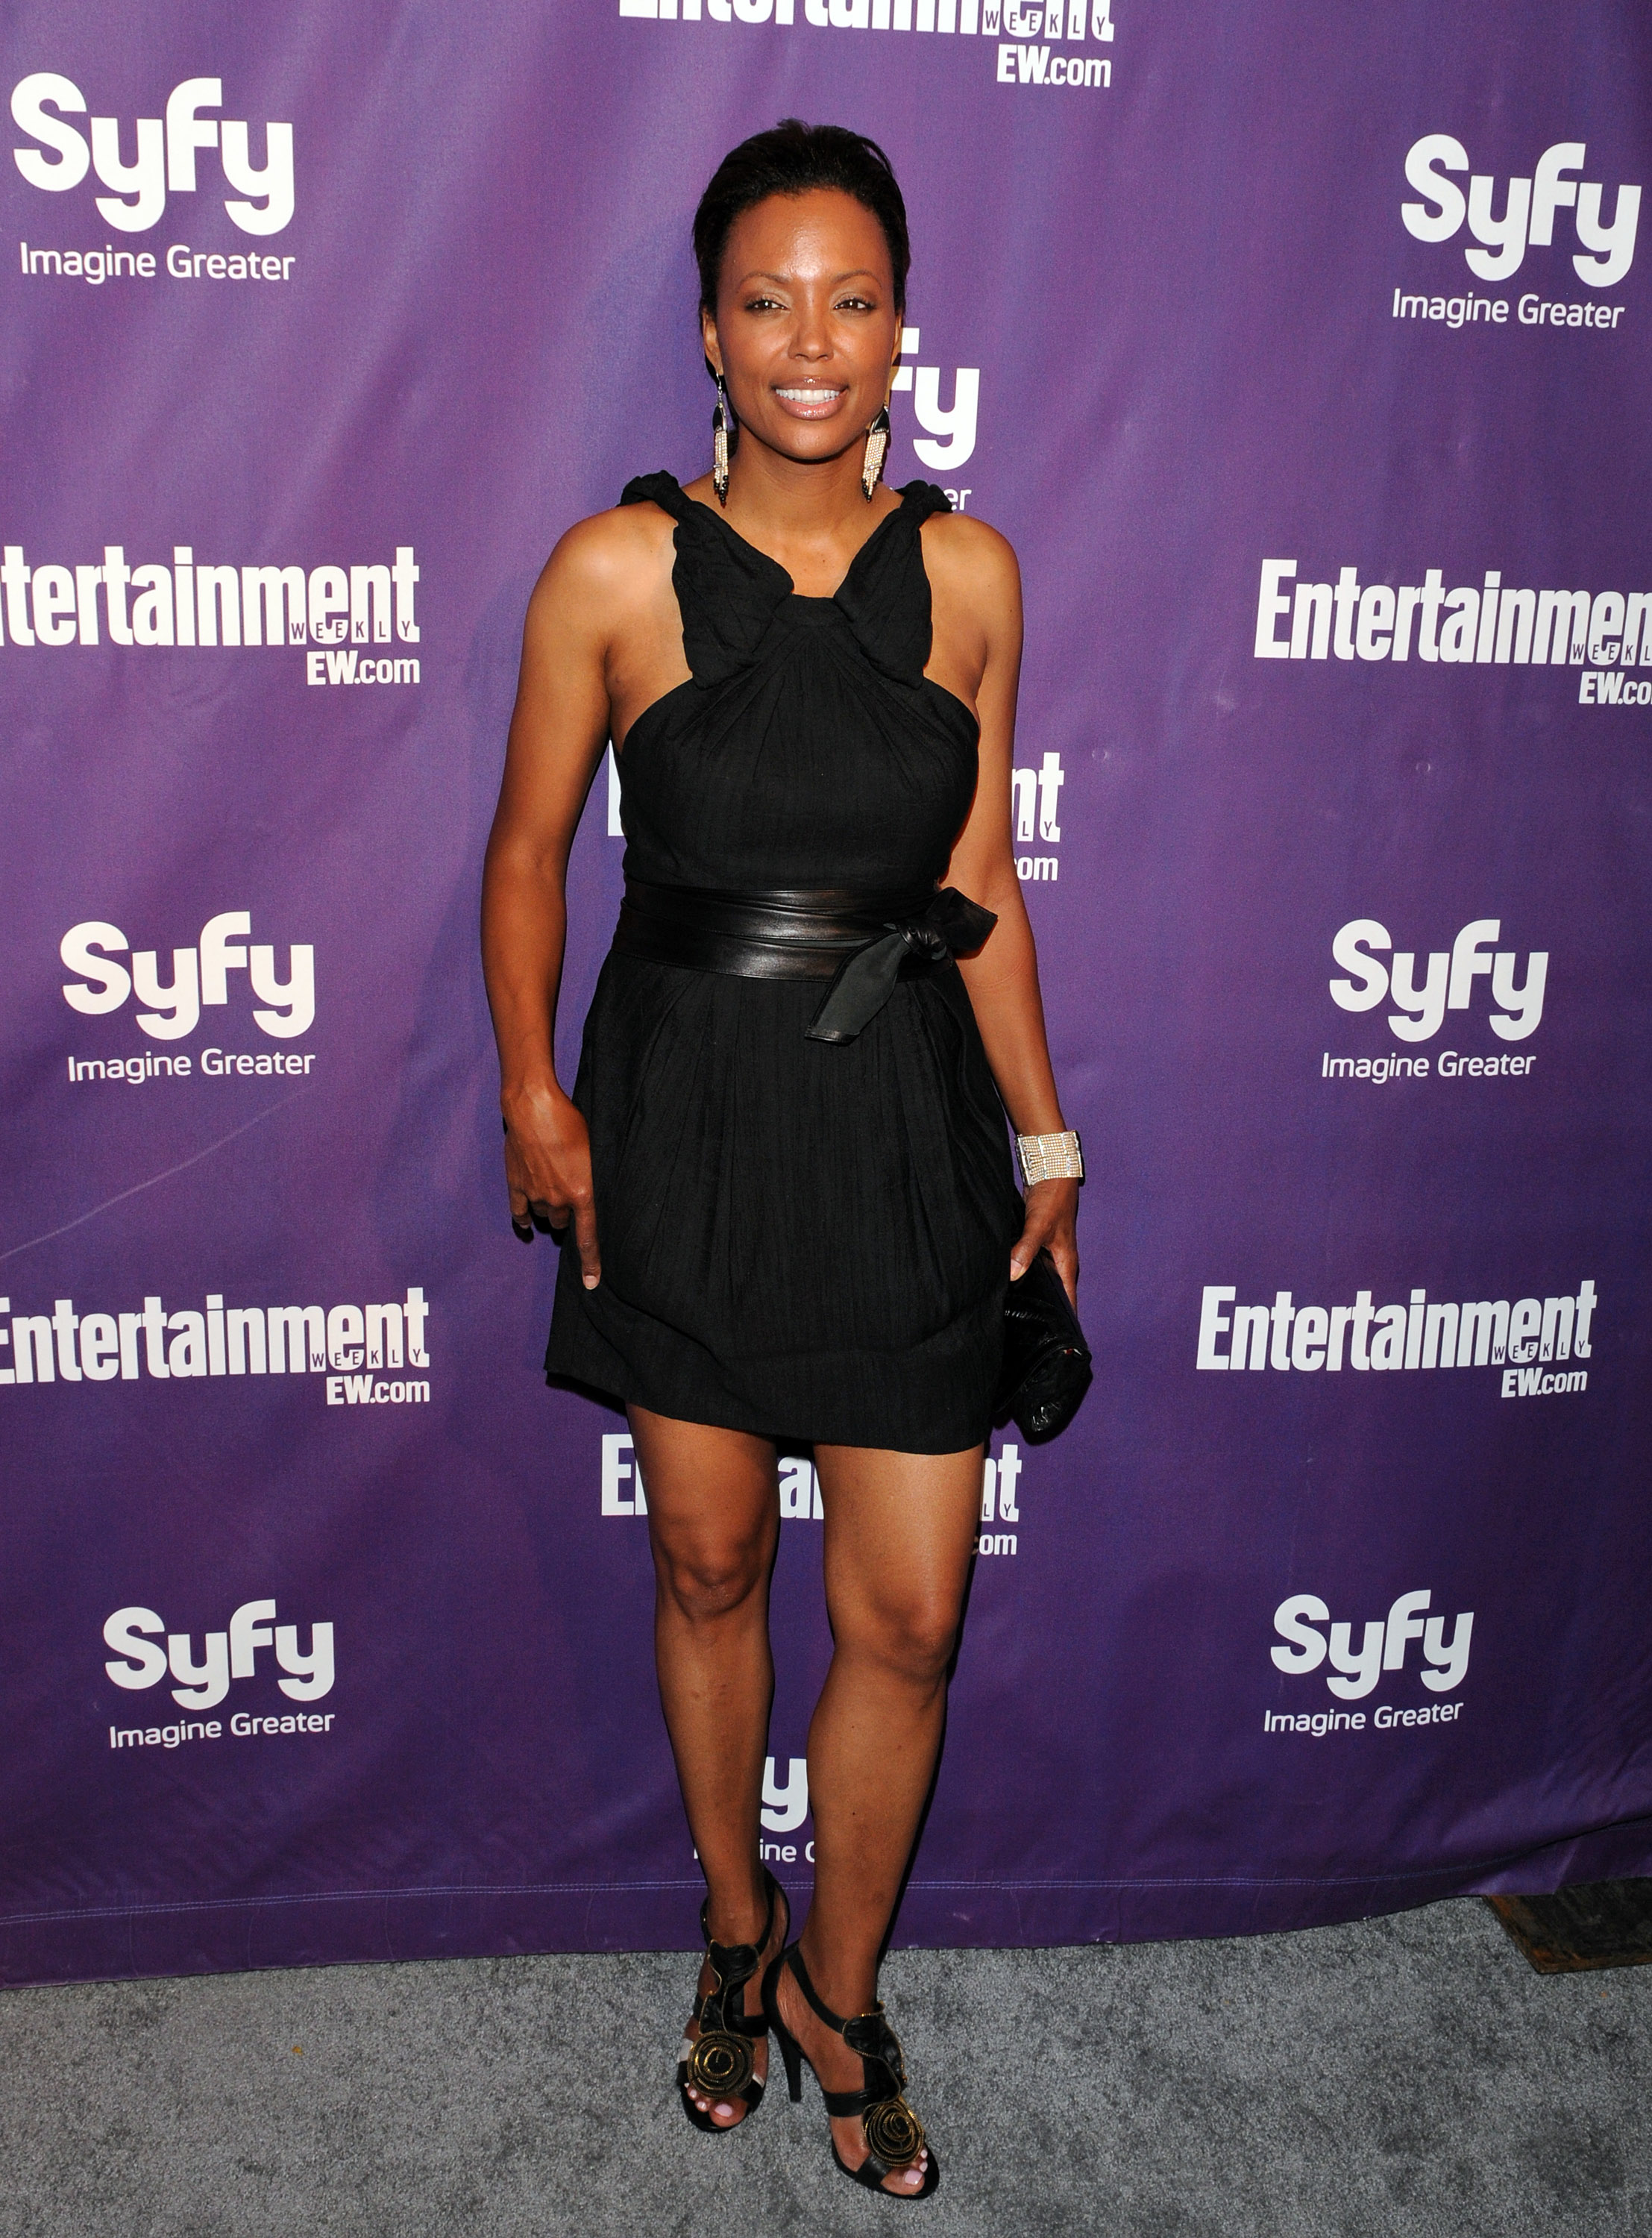 Aisha tyler nakes pictures remarkable